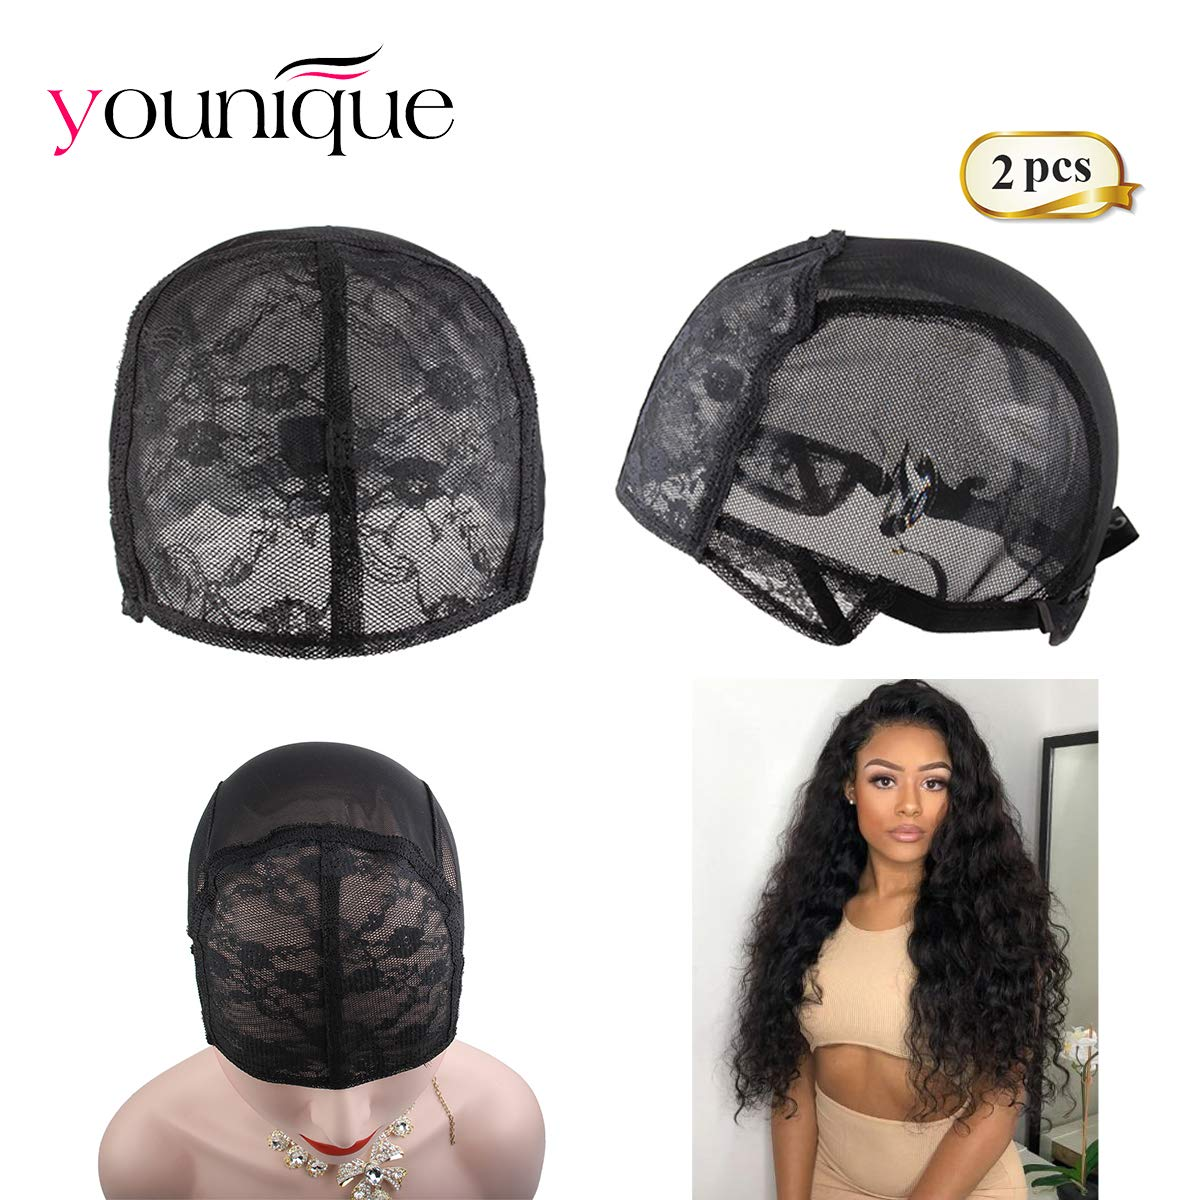 2fdf08eae25 2pcs Black Stretch Swiss Lace Wigs Caps With Adjustable Strap For Making  Wigs Adjustable Wig Cap